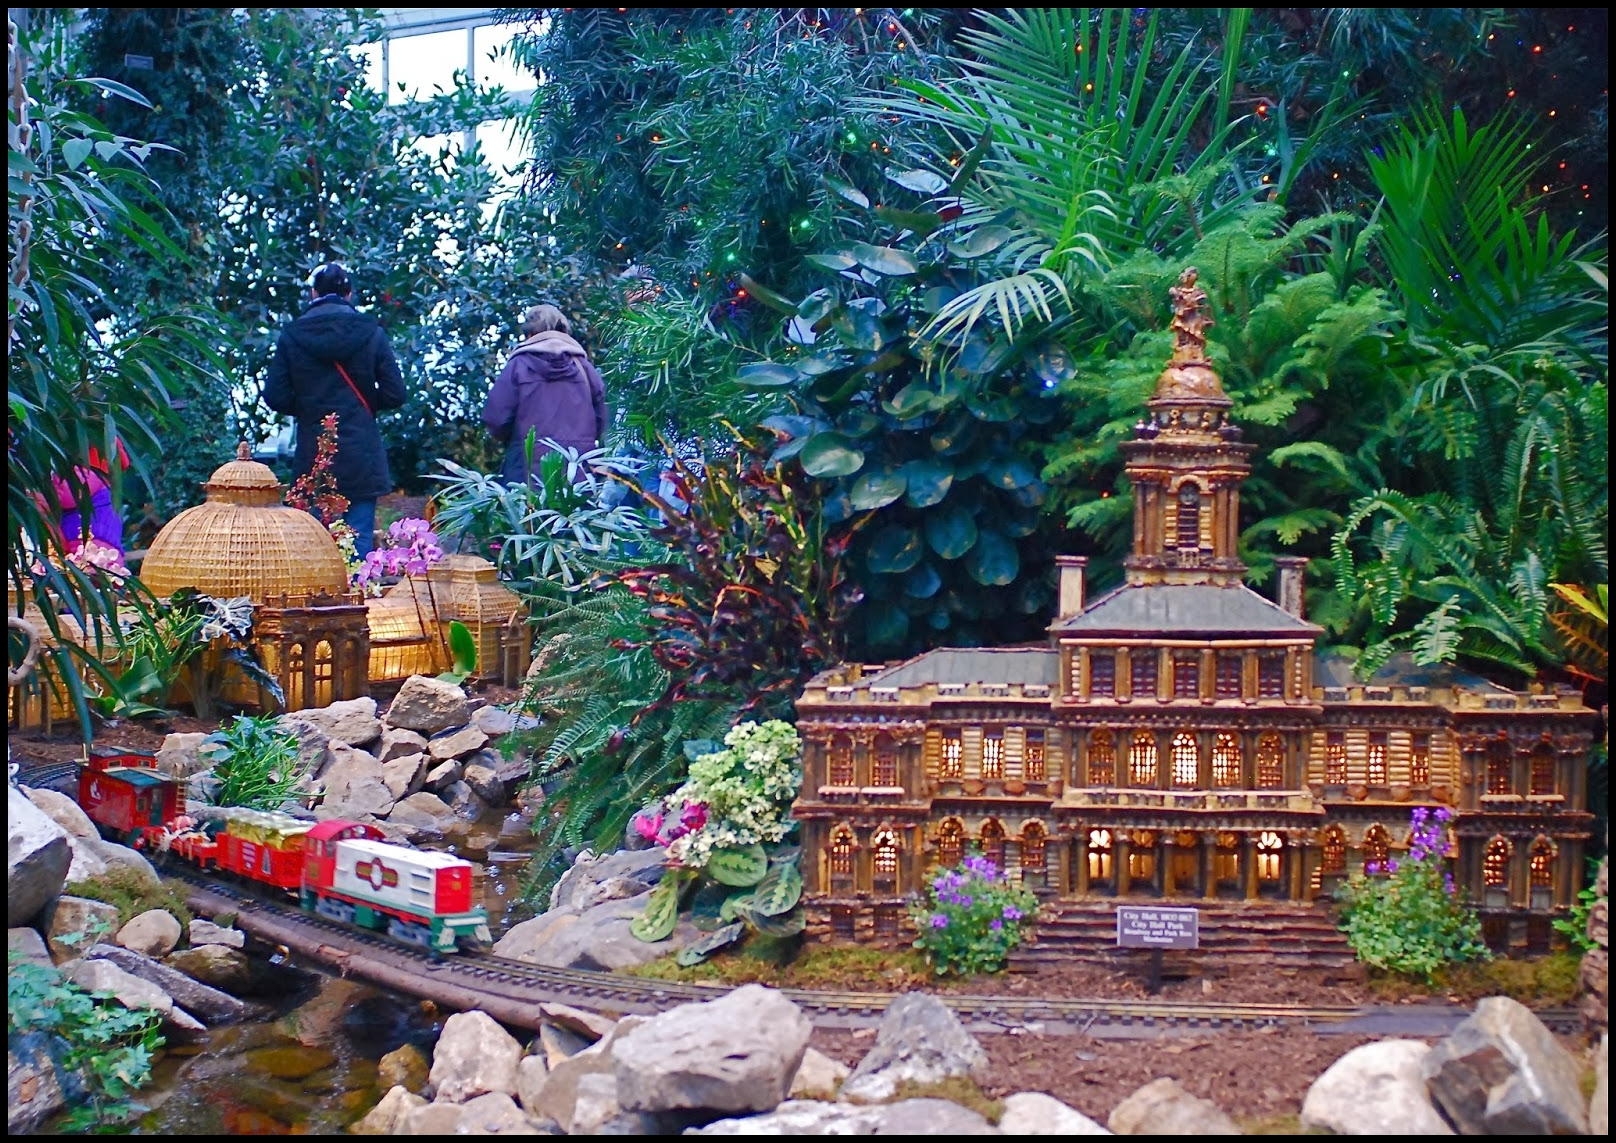 Garden S New York Botanical Gardens Holiday Train Show 2013